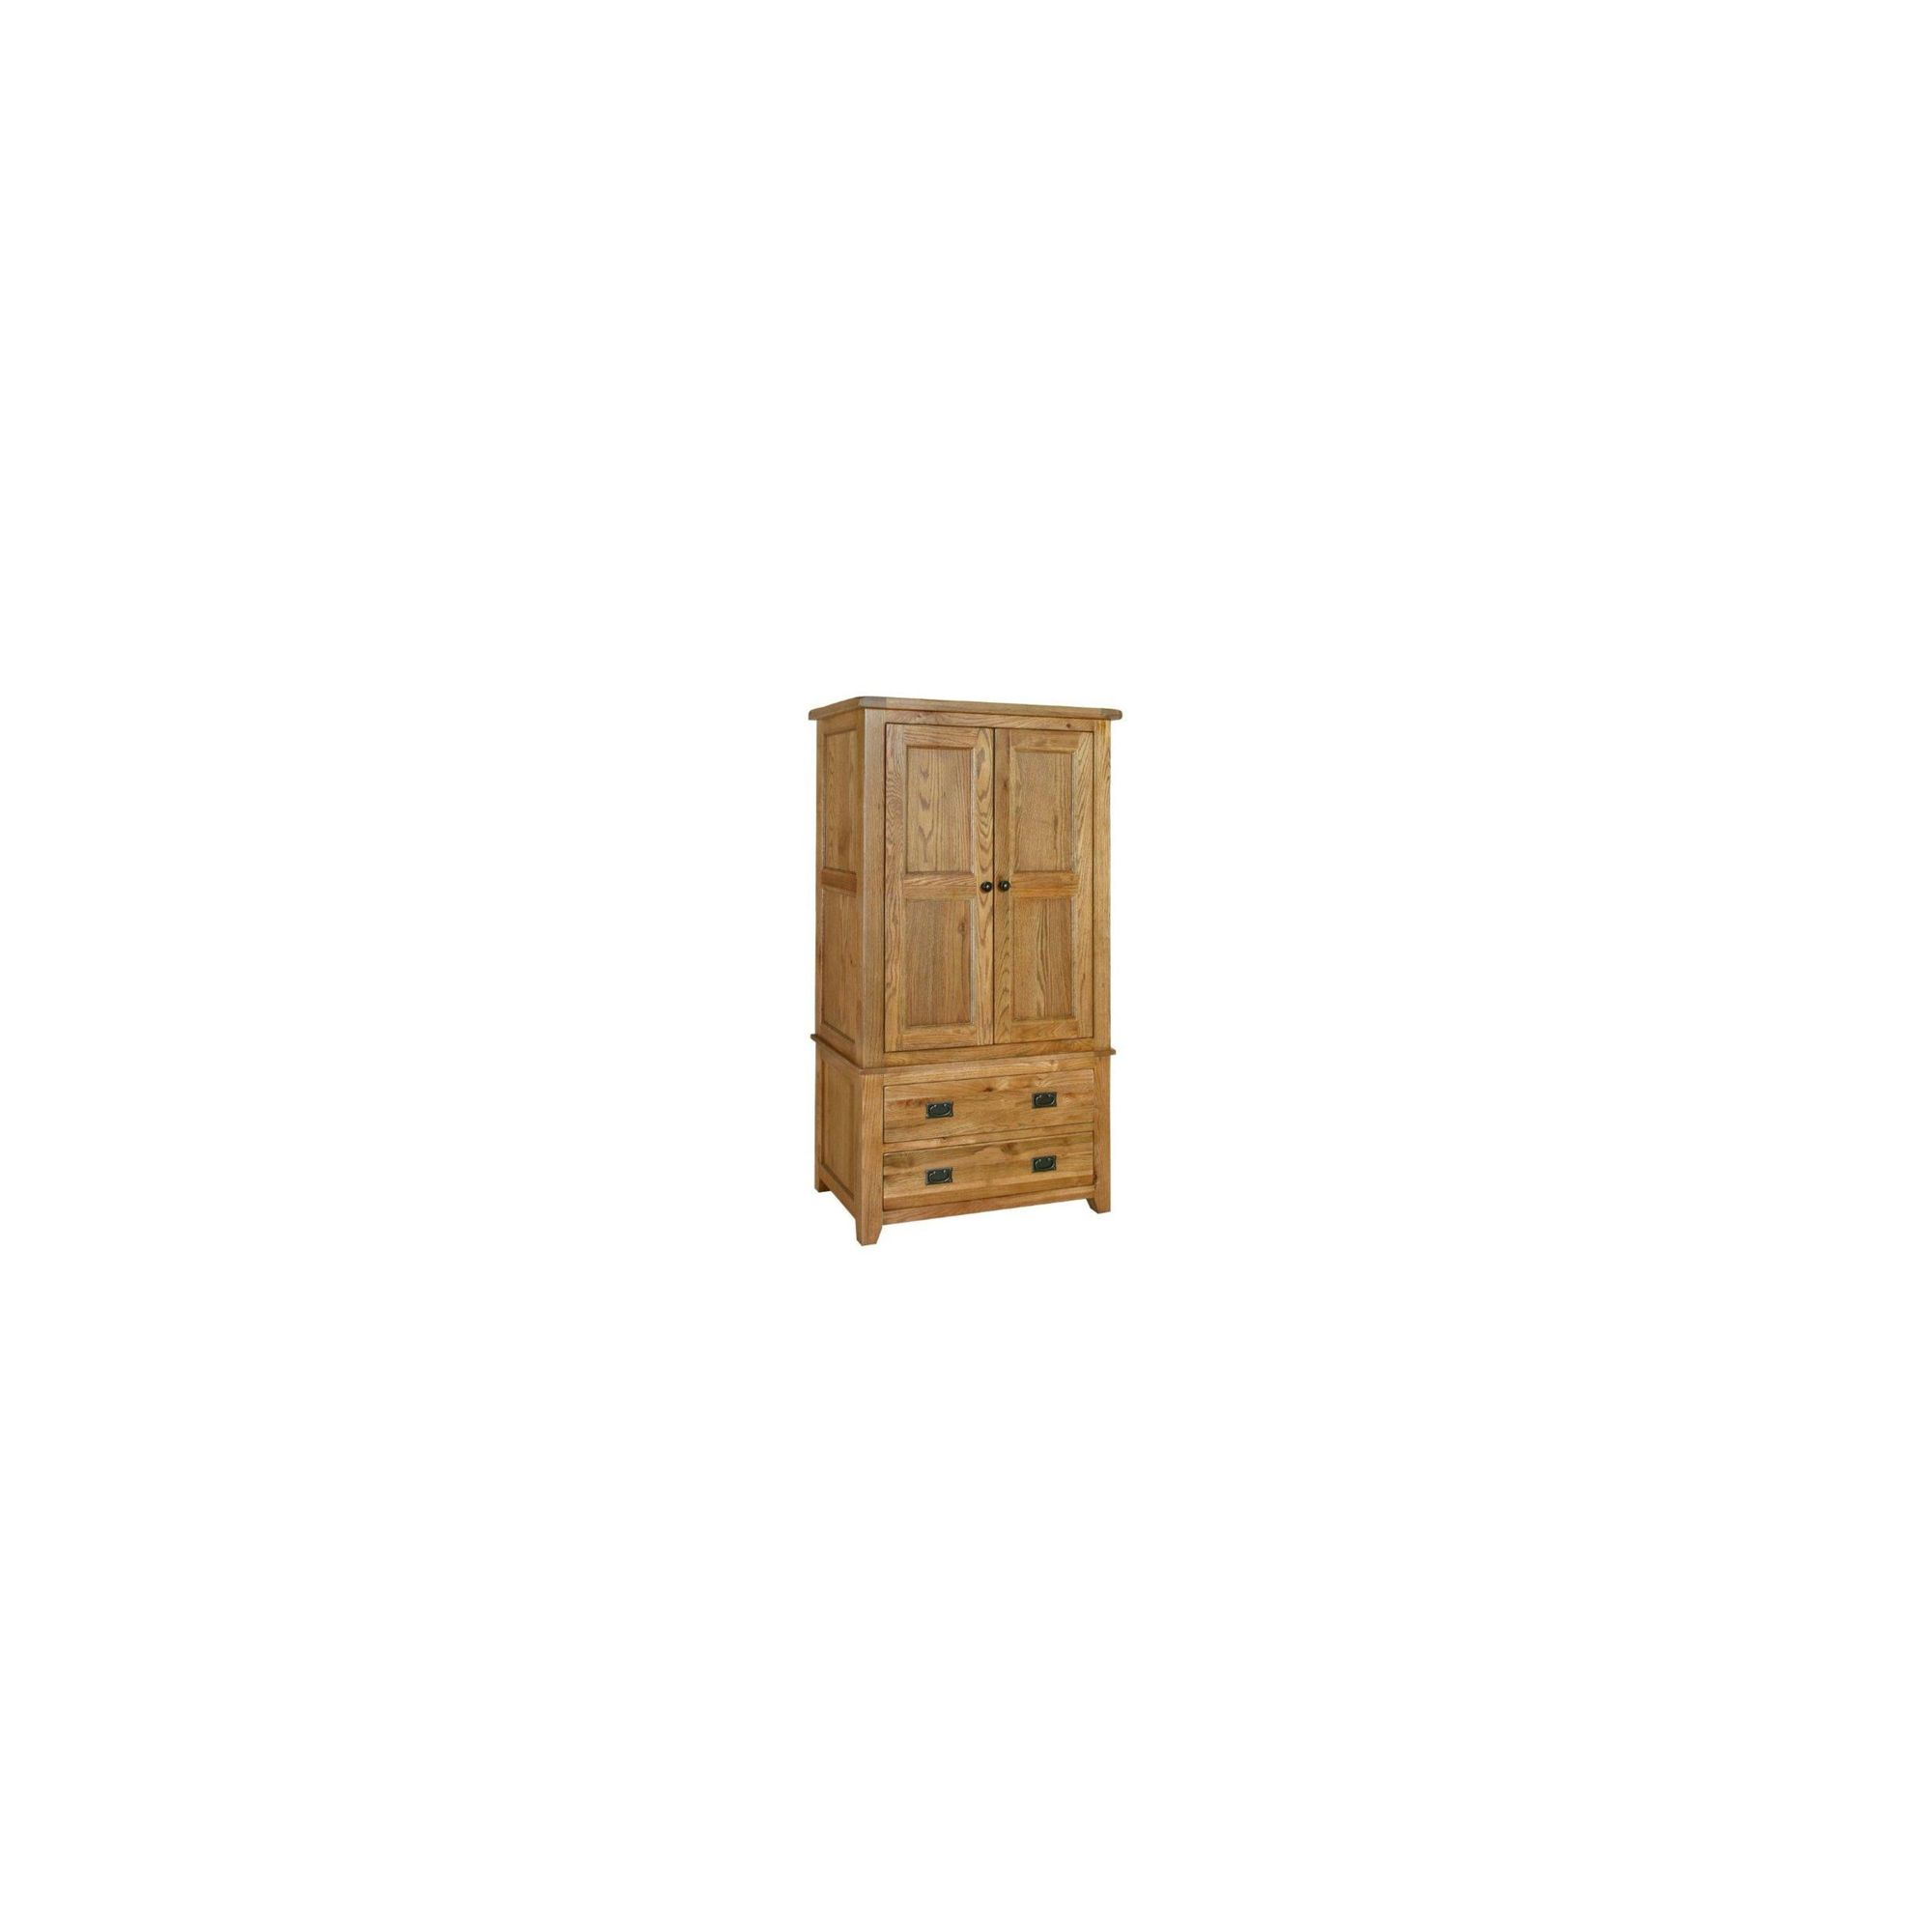 Kelburn Furniture Bordeaux Gents Wardrobe in Medium Oak Stain and Satin Lacquer at Tescos Direct